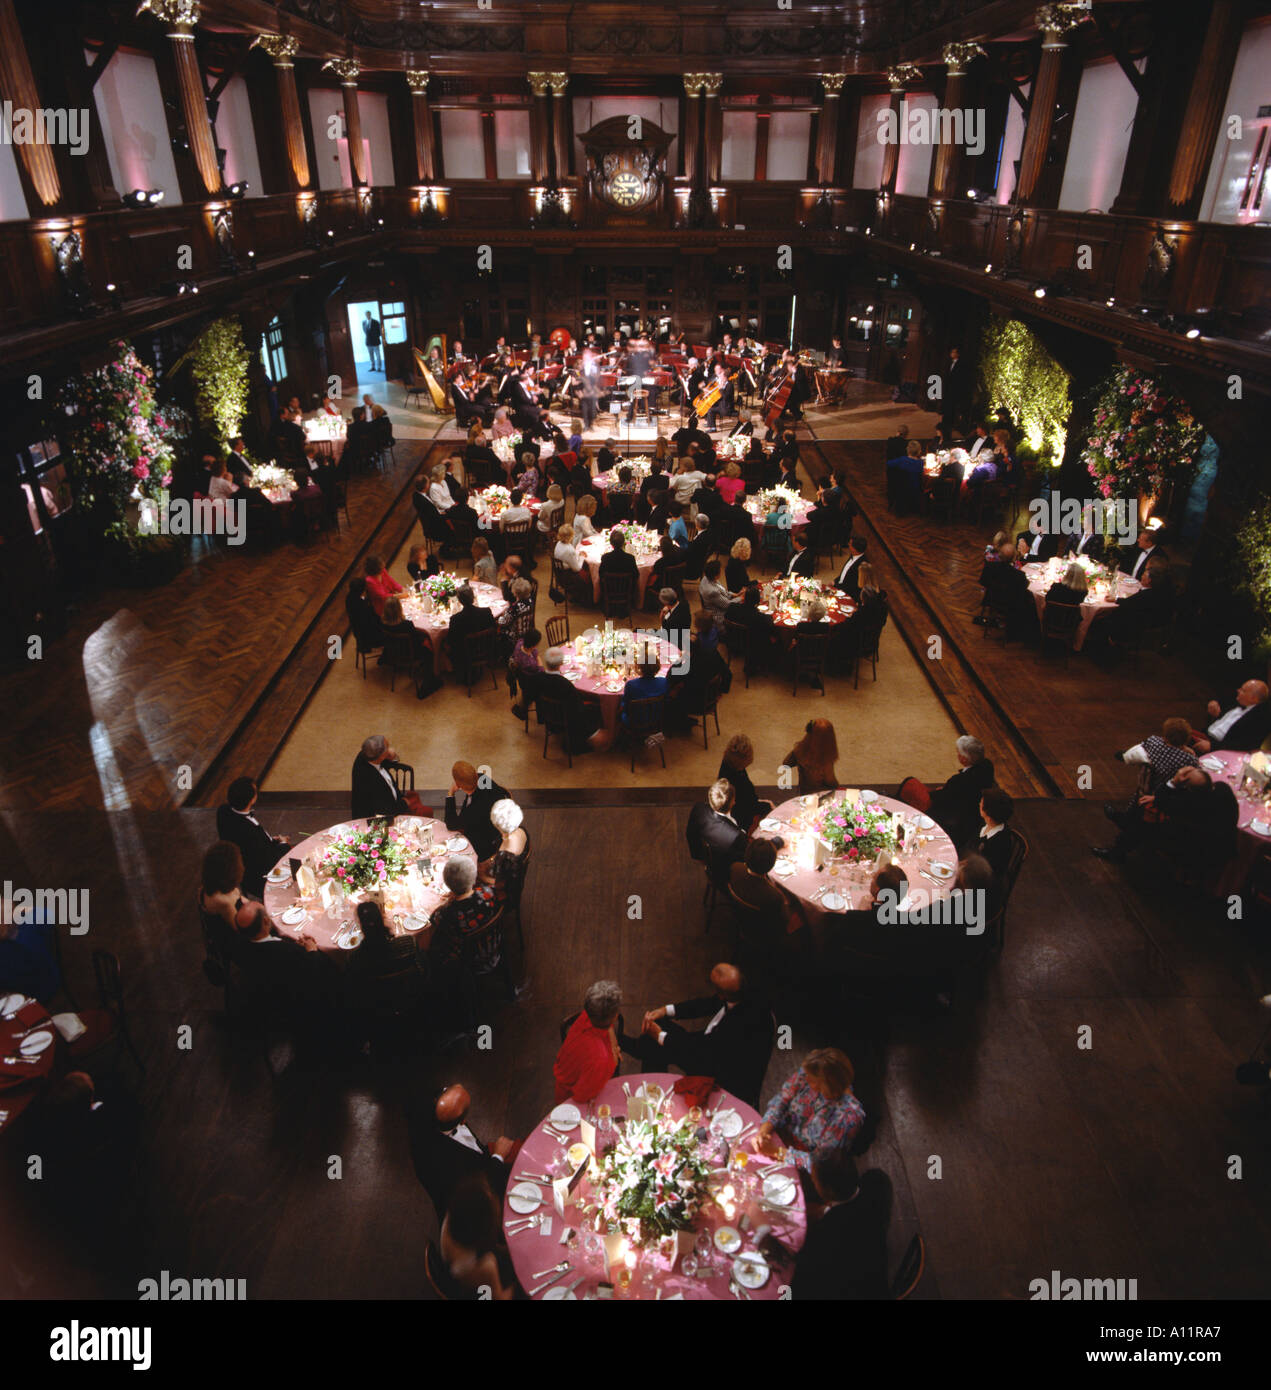 The Welsh National Opera Orchestra entertain guests at a Charity Dinner held at The Coal Exchange Cardiff Bay Wales Great Britai - Stock Image